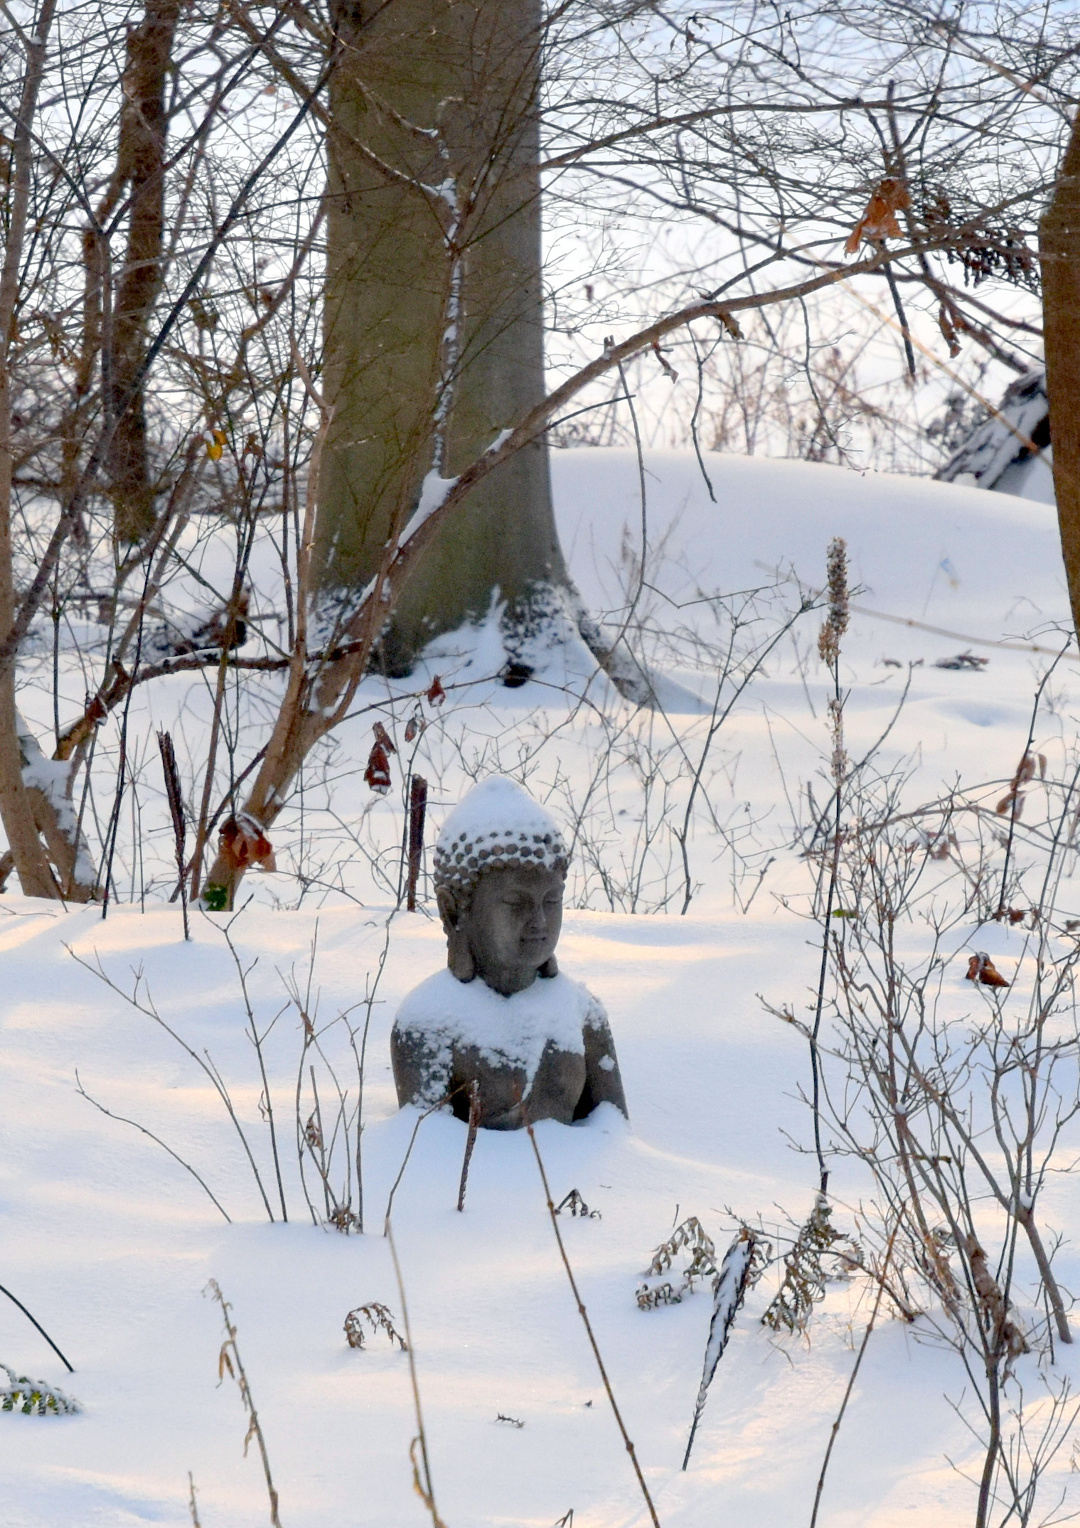 Buddha statue in snow